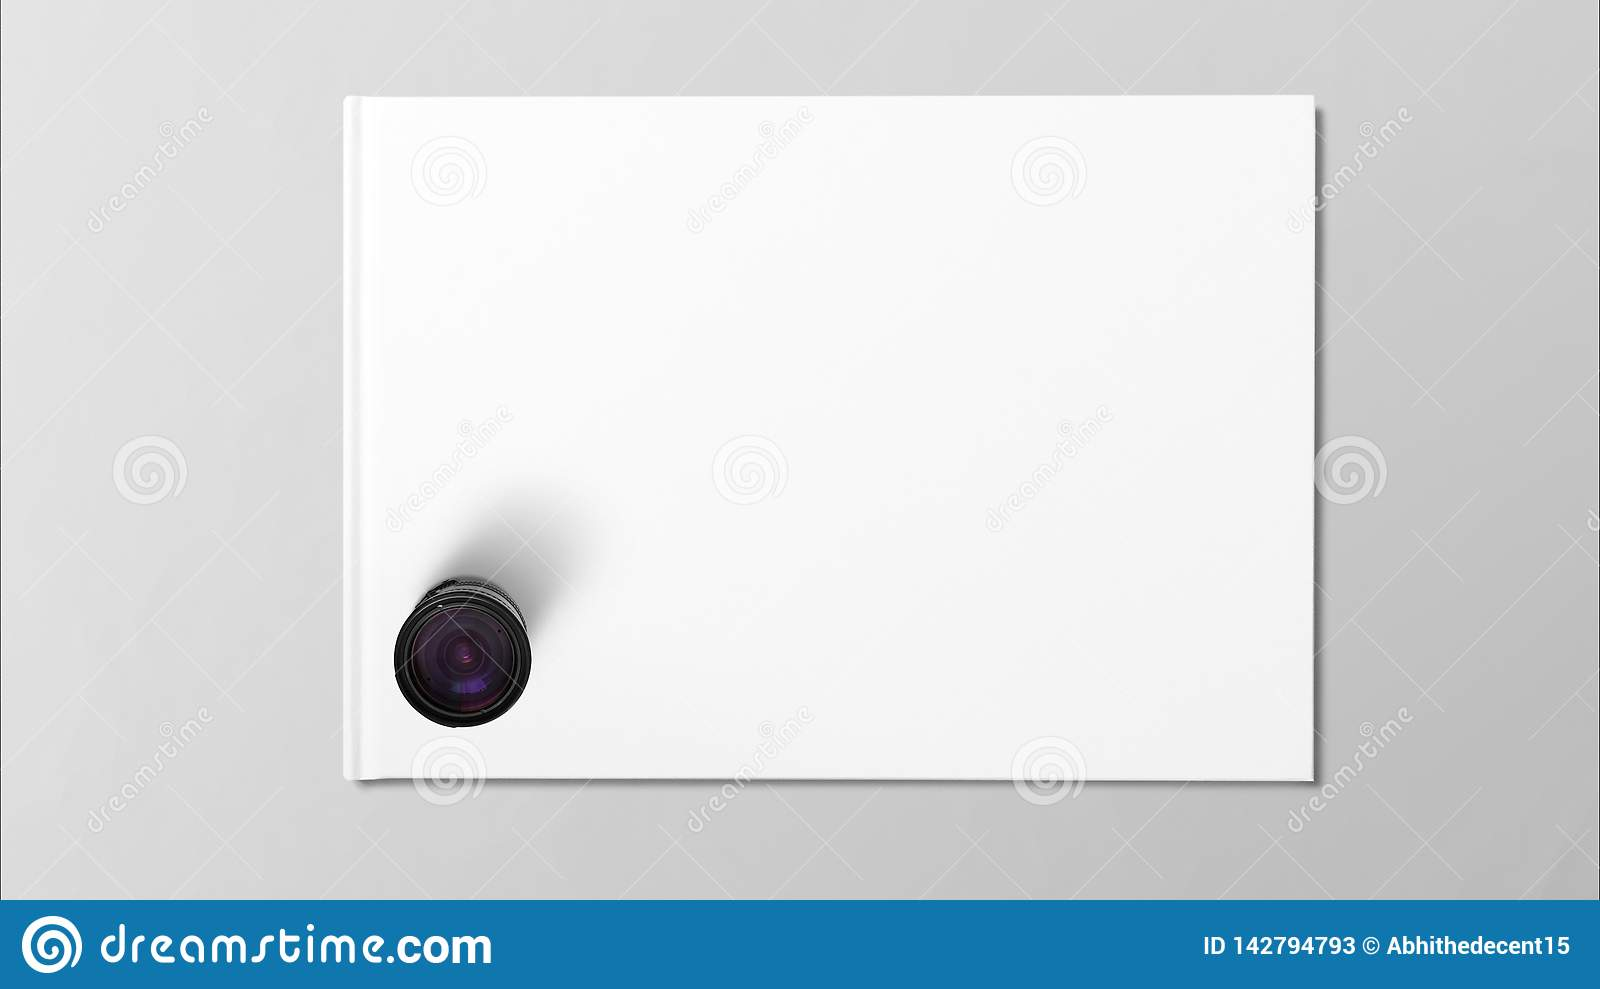 Digital lens on white paper on grey background.